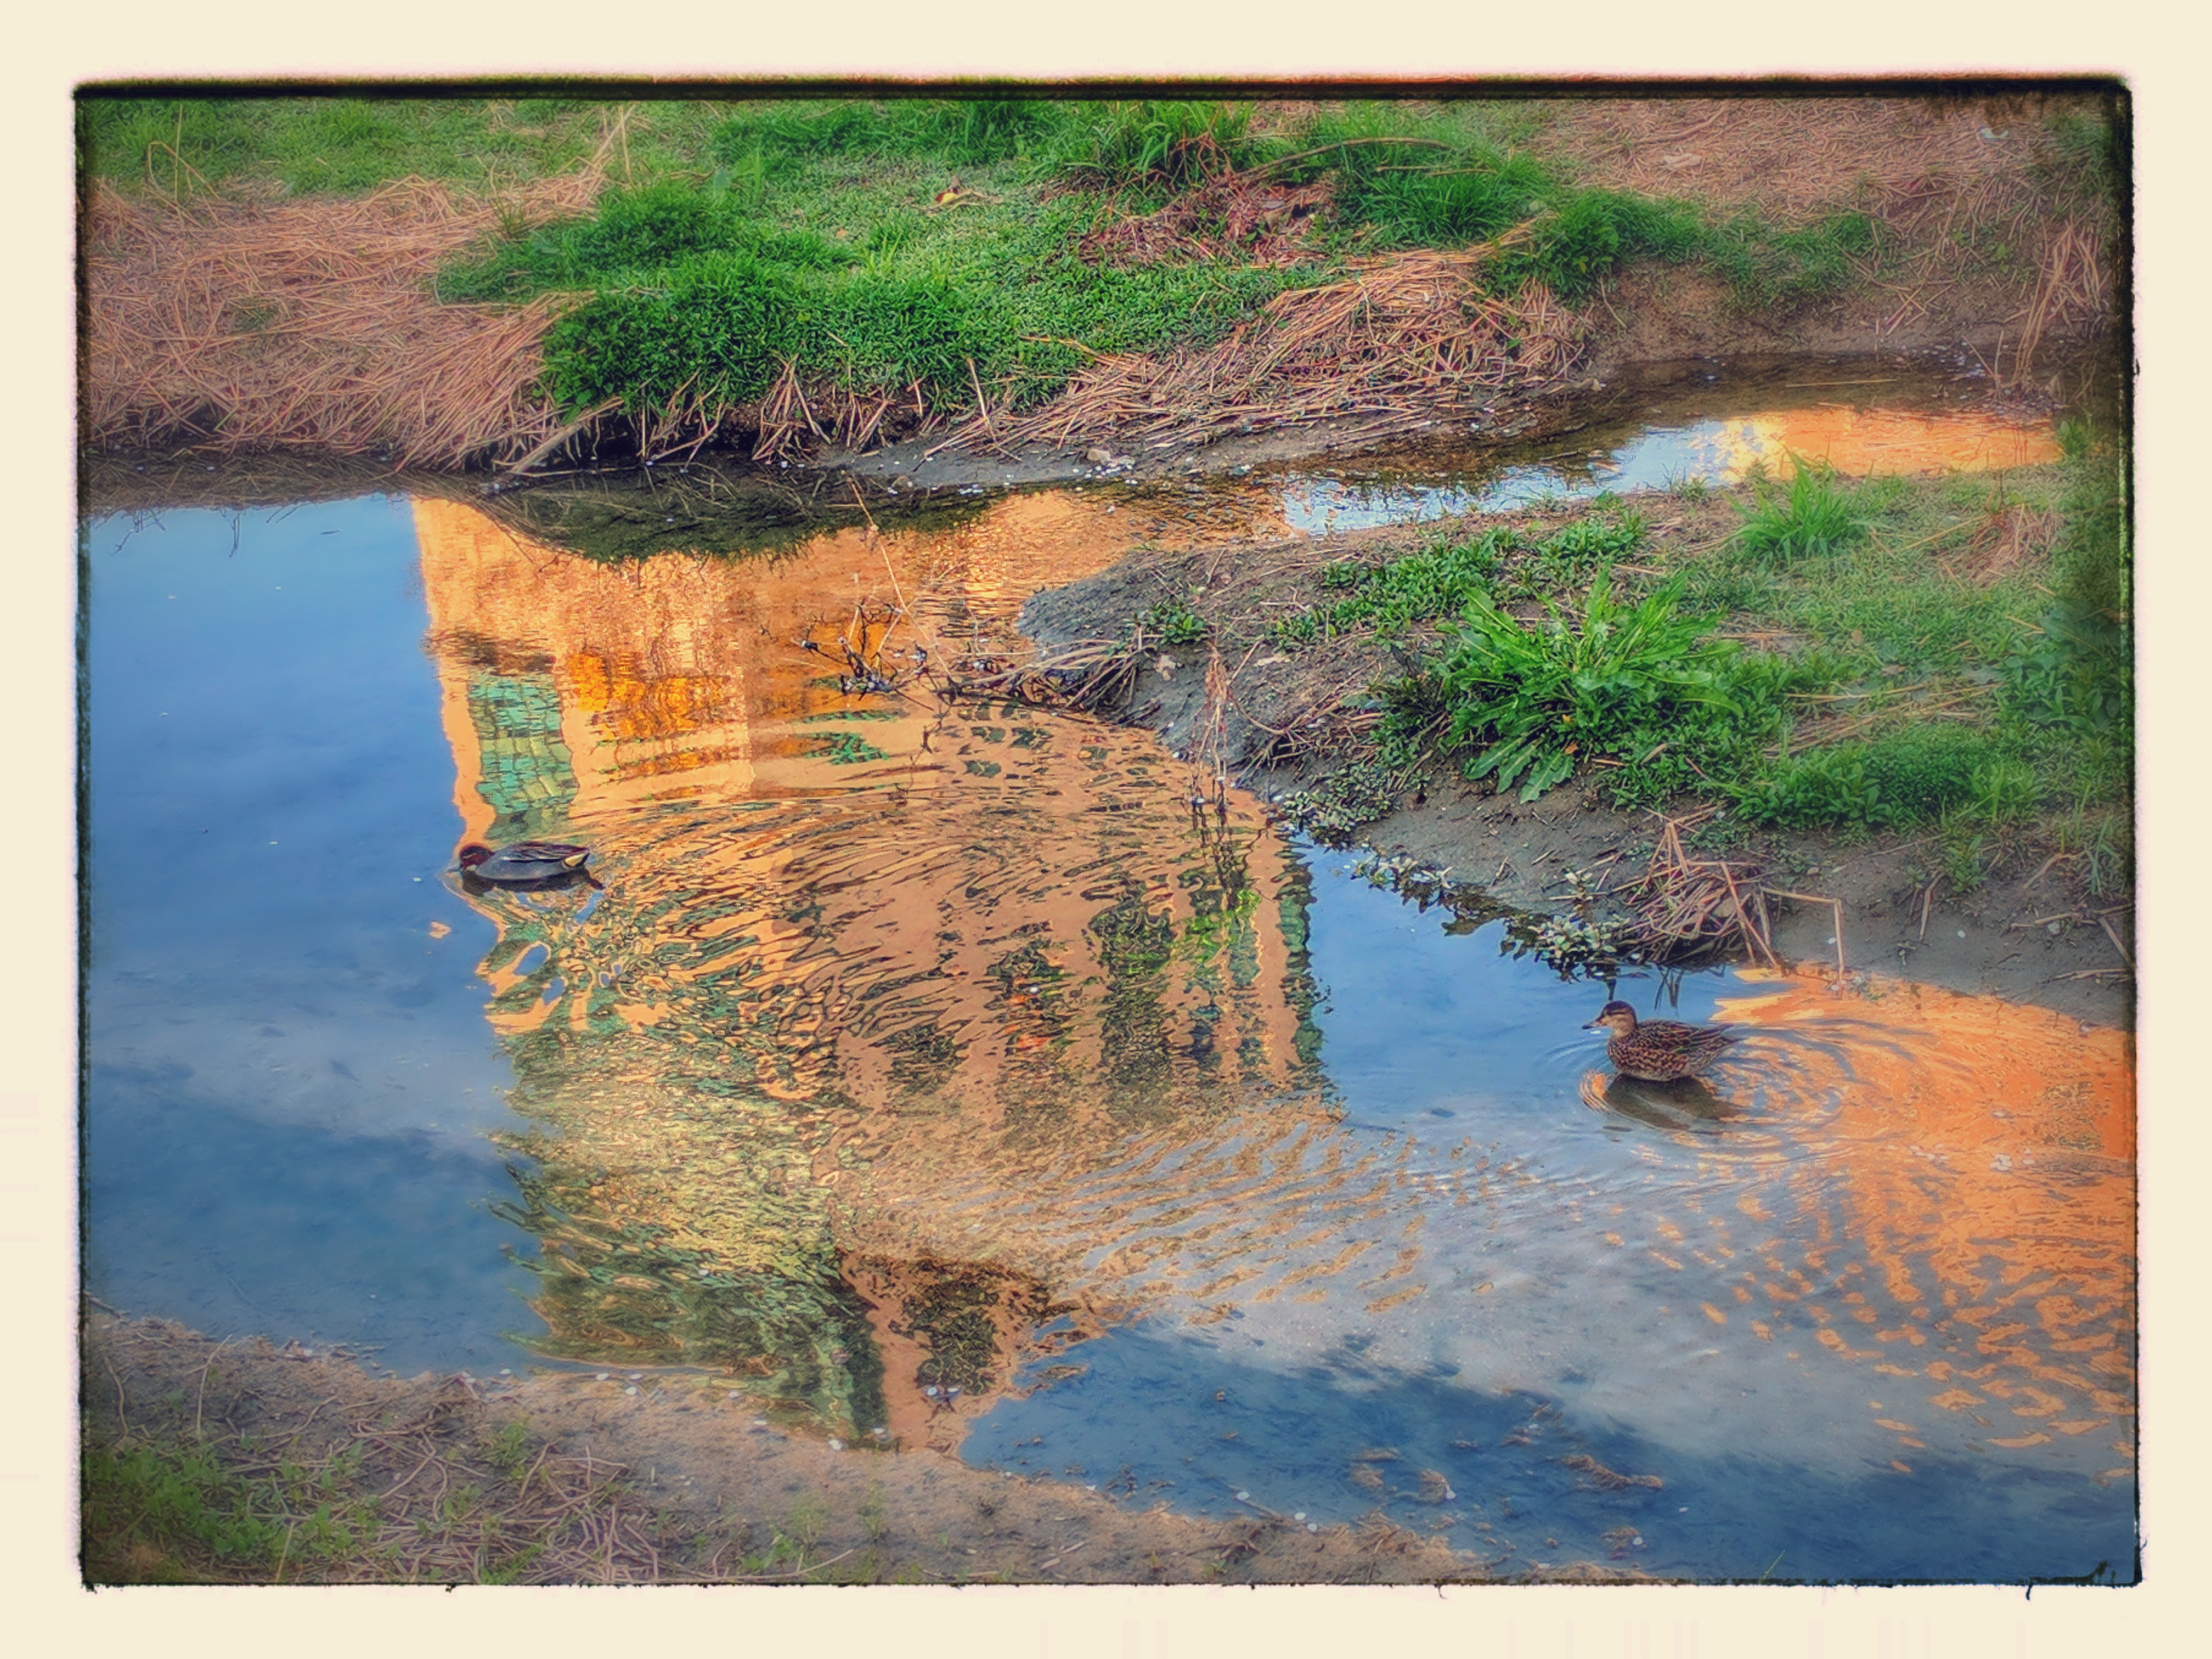 Common teals on the Sunset reflection; Image ONLY